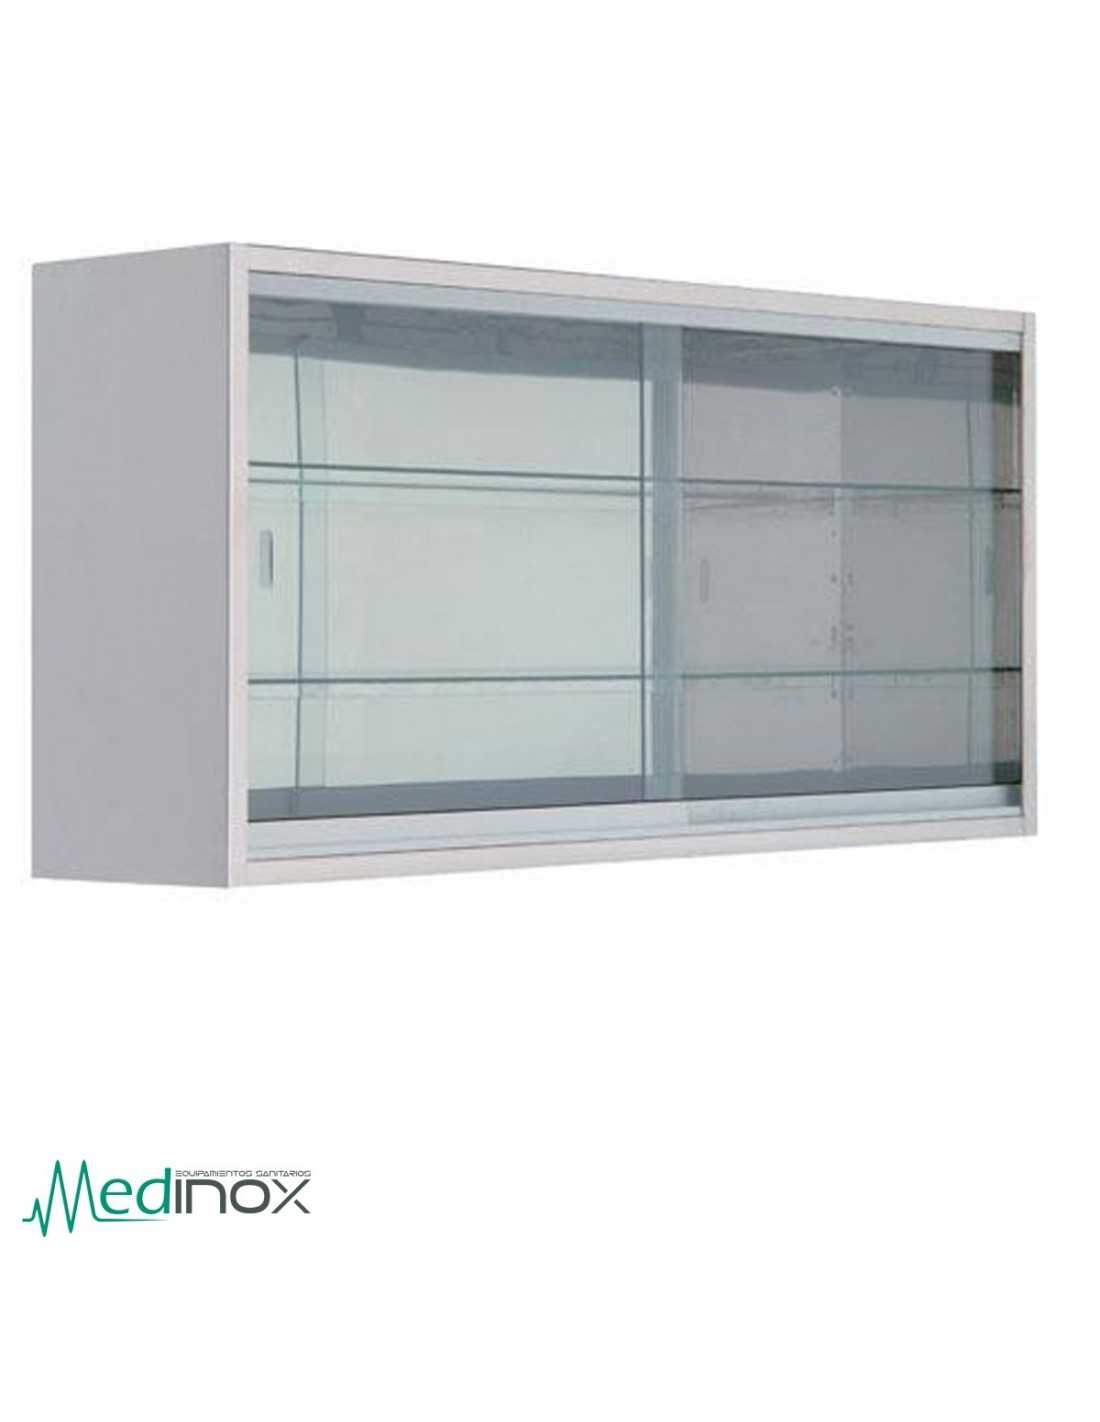 Vitrinas de pared ic24156 para medicamentos 120 l x 30 l for Vitrinas de pared